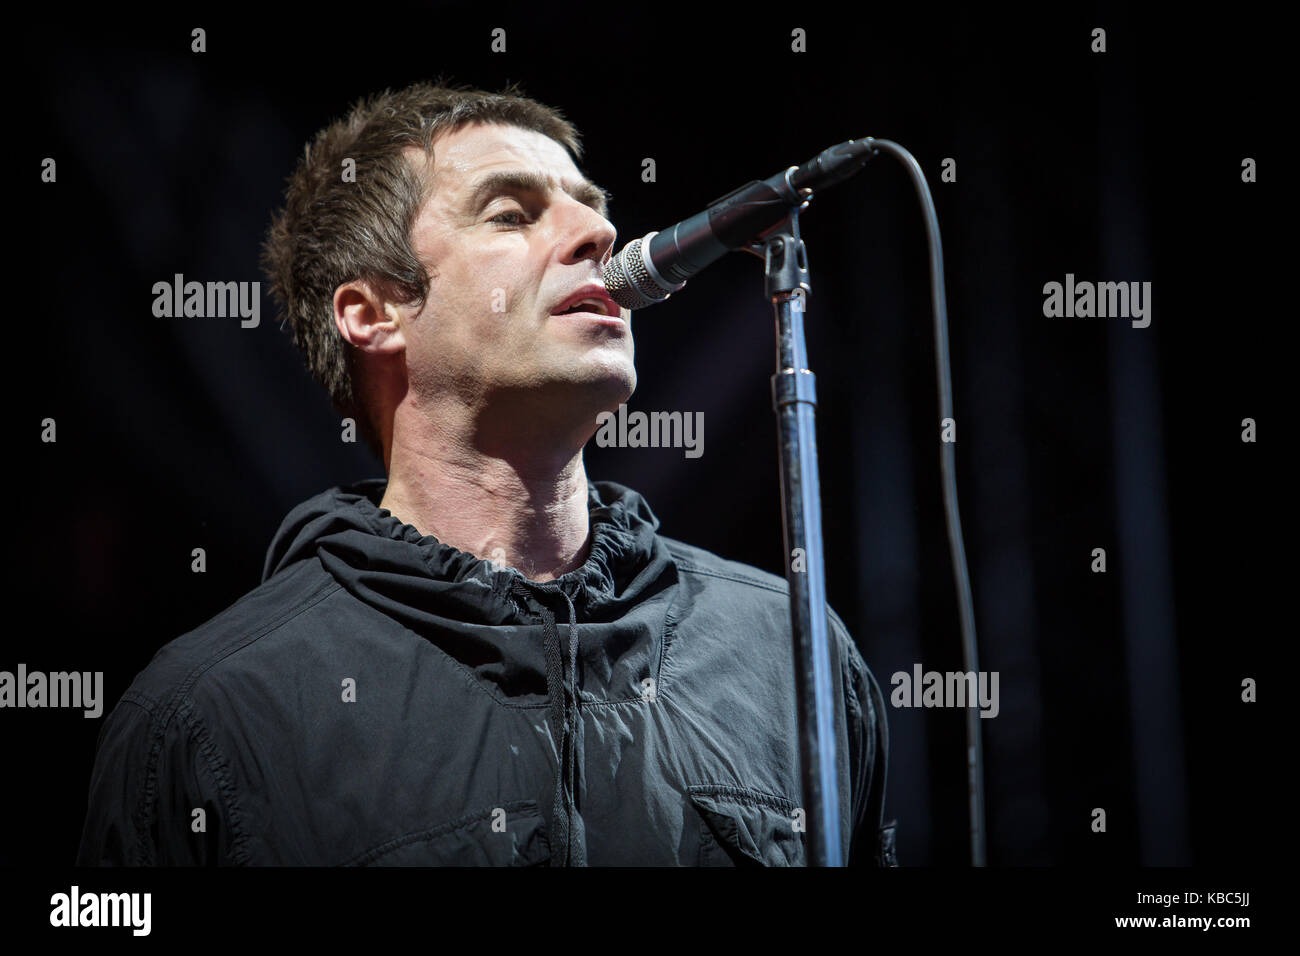 The English singer, songwriter and musician Liam Gallagher performs a live concert during the Norwegian music festival - Stock Image